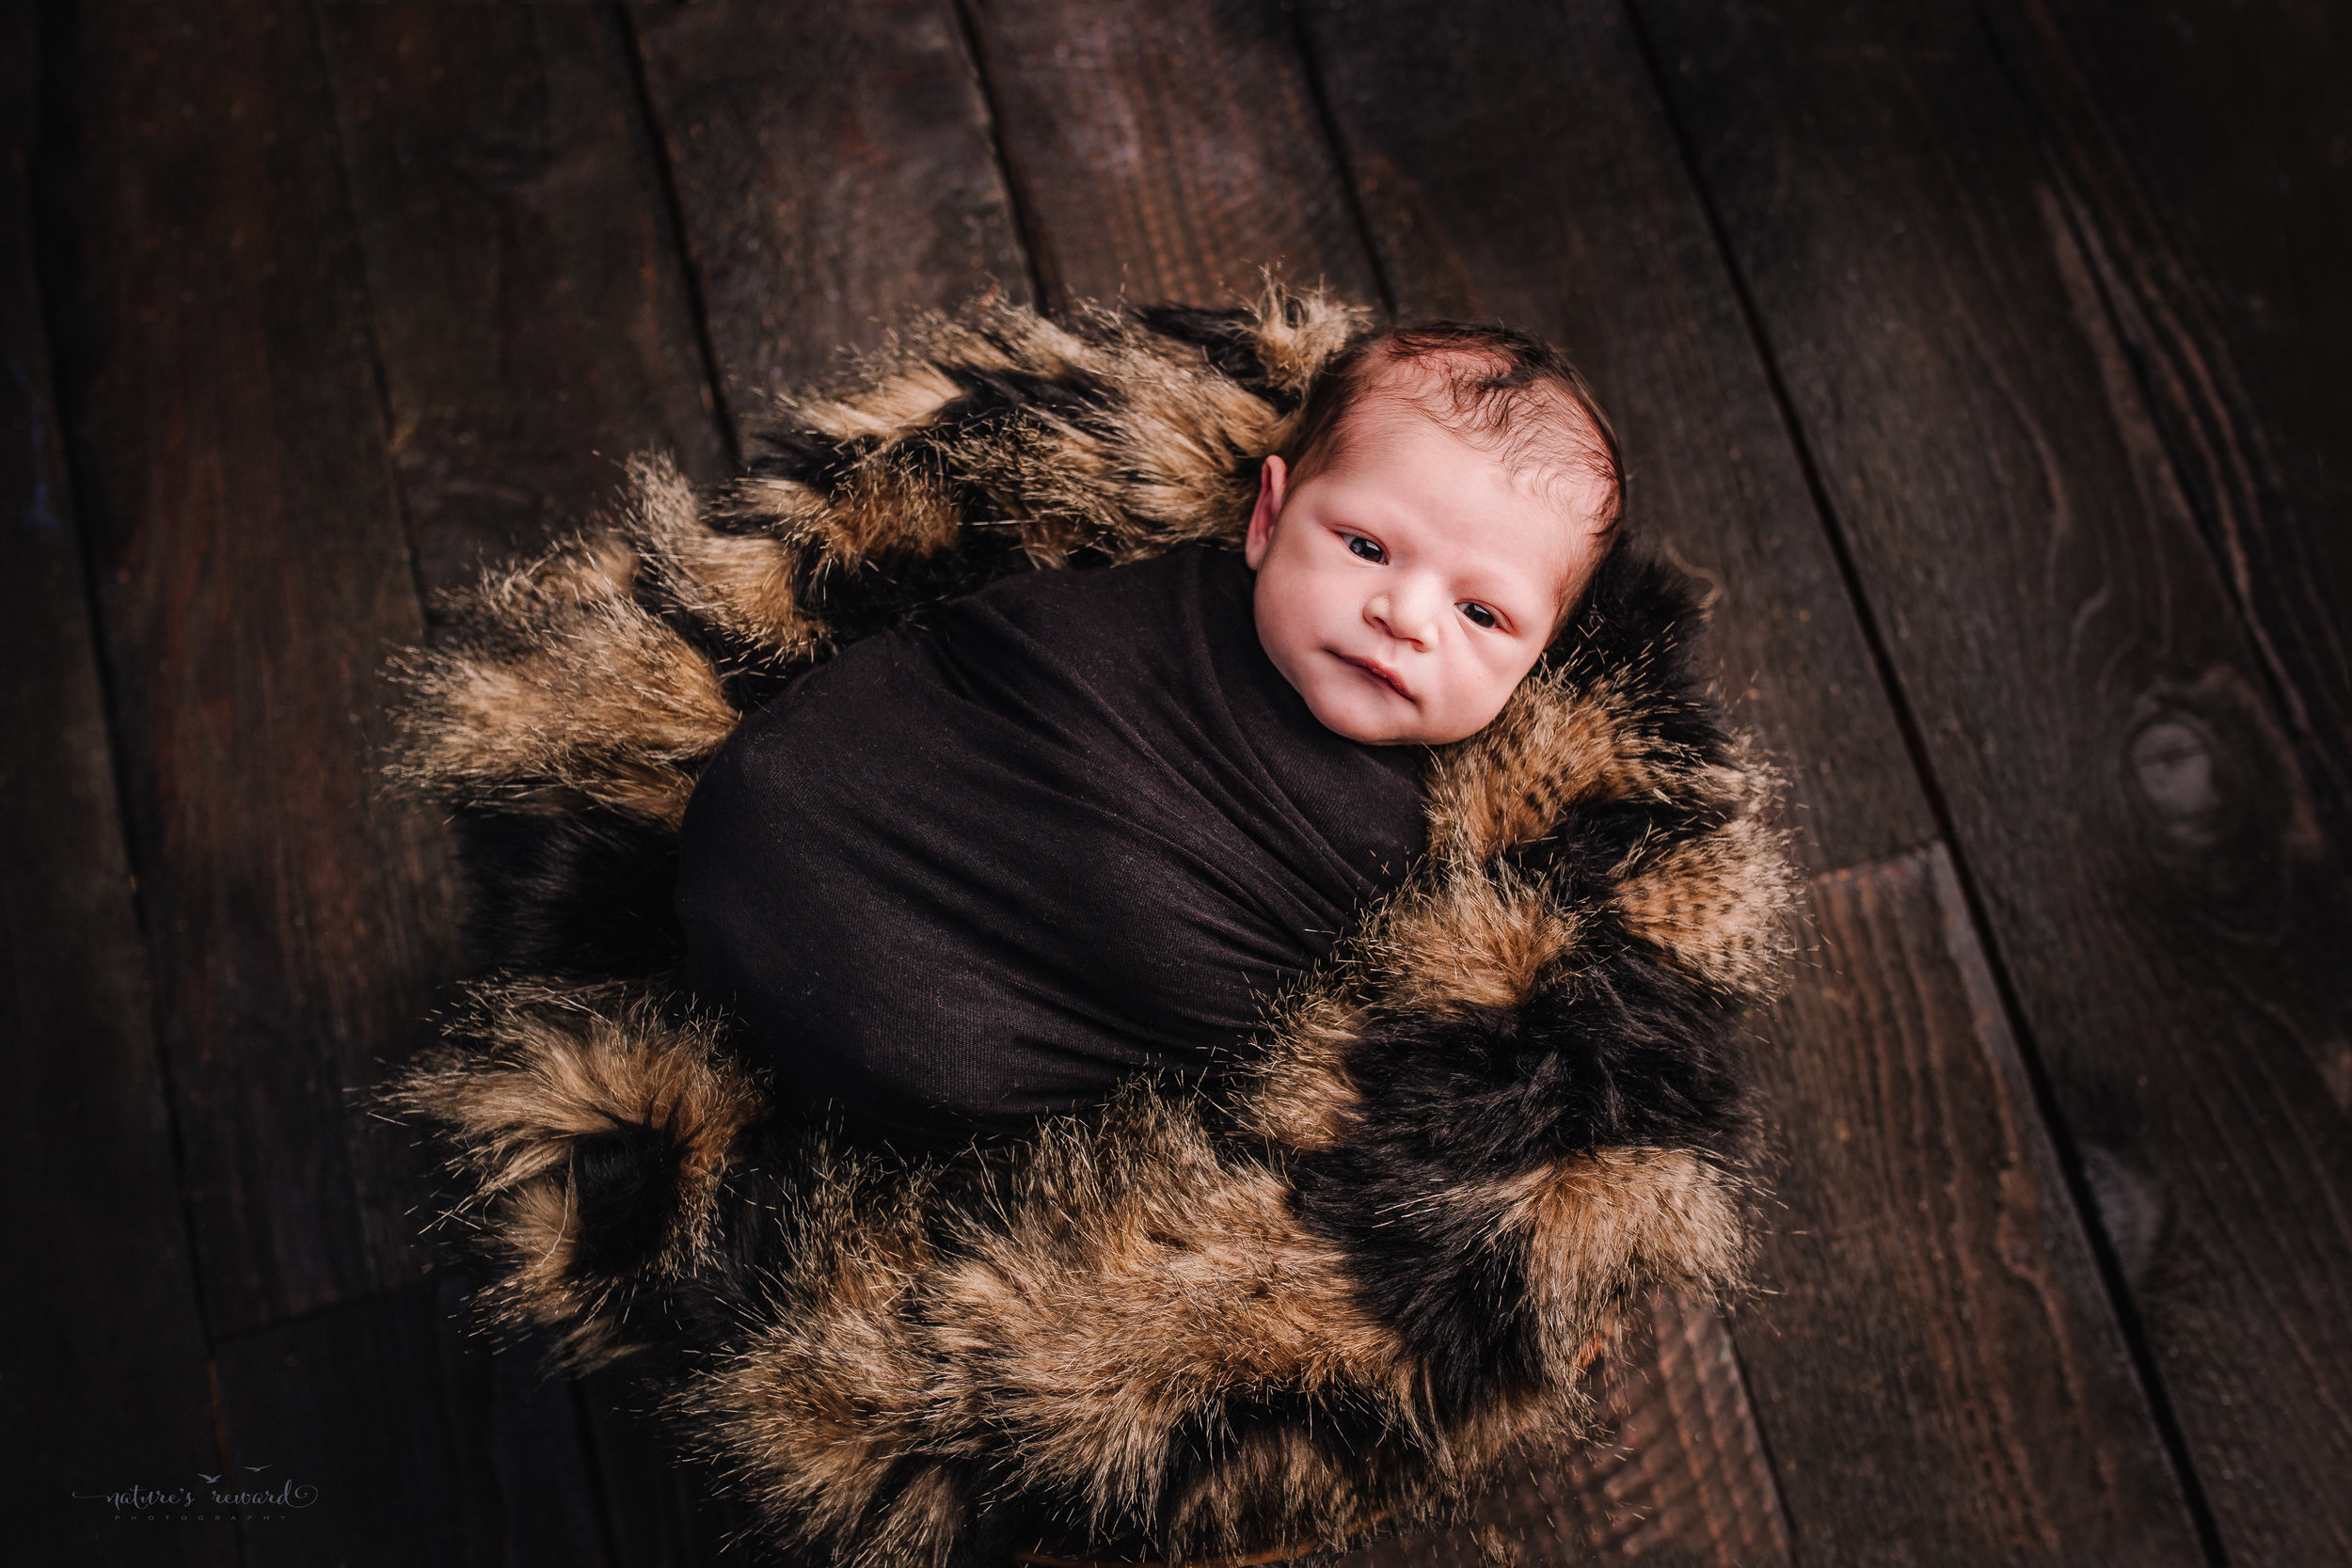 Newborn baby boy swaddled in black on a bed of furs on a dark wood floor by san Bernardino's maternity, newborn and family photography, Nature's Reward Photography